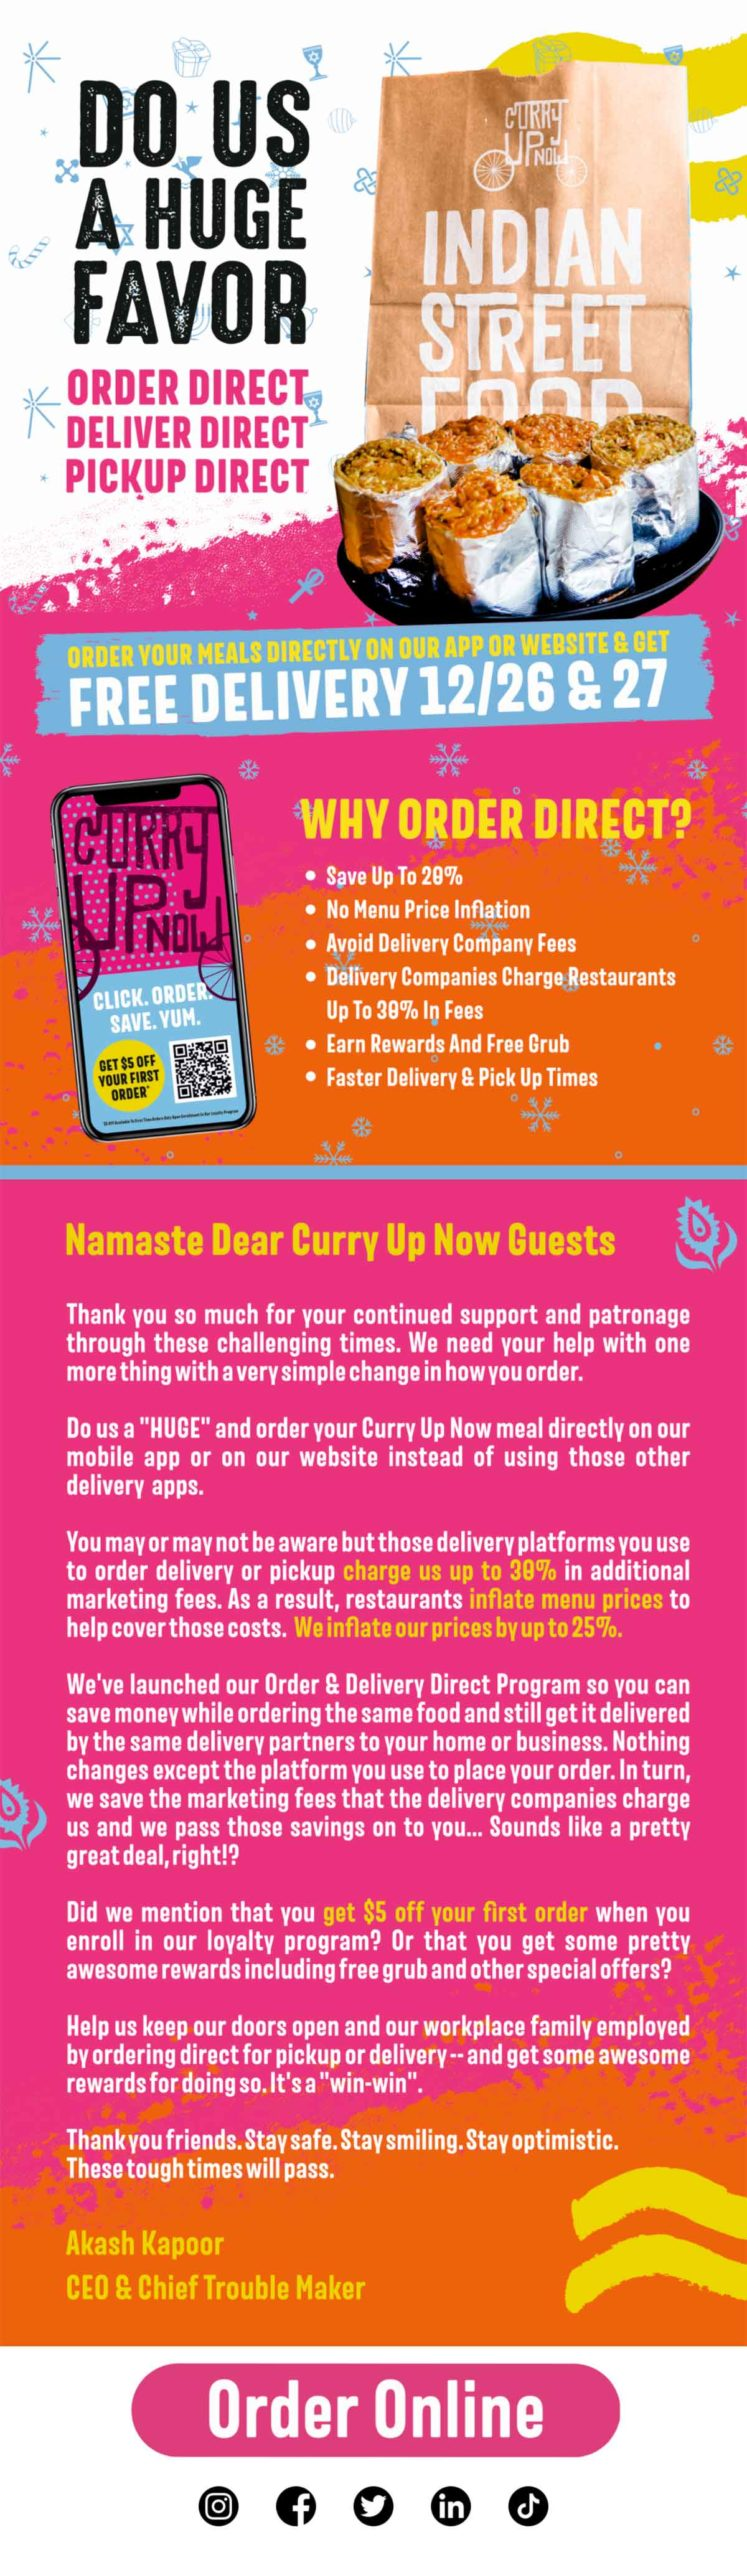 Curry Up Now email about ordering direct